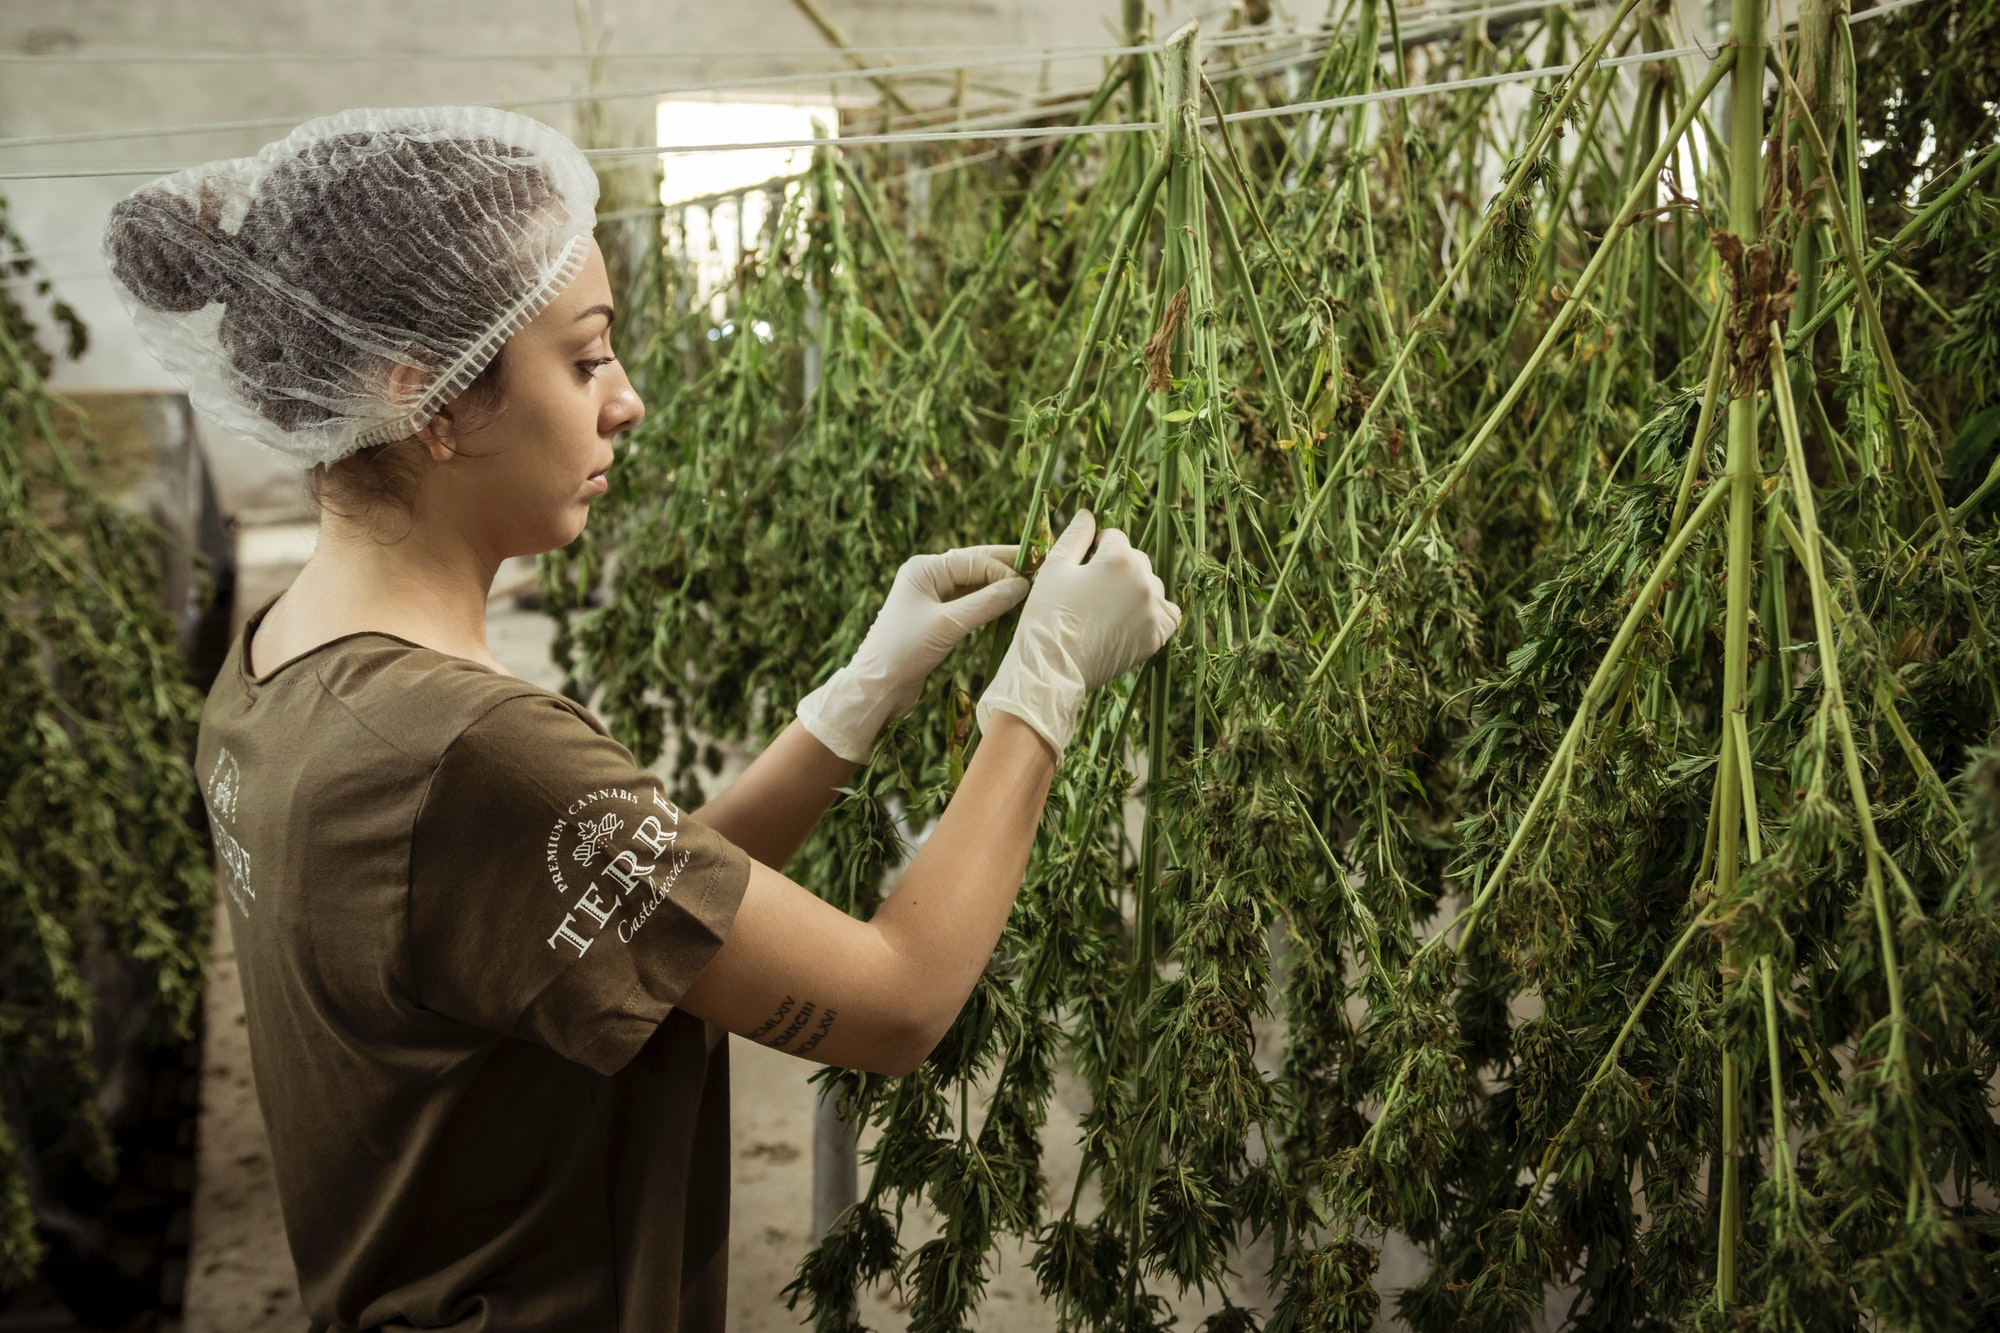 Canadian cannabis giant & Israeli medical cannabis producer want to grow together